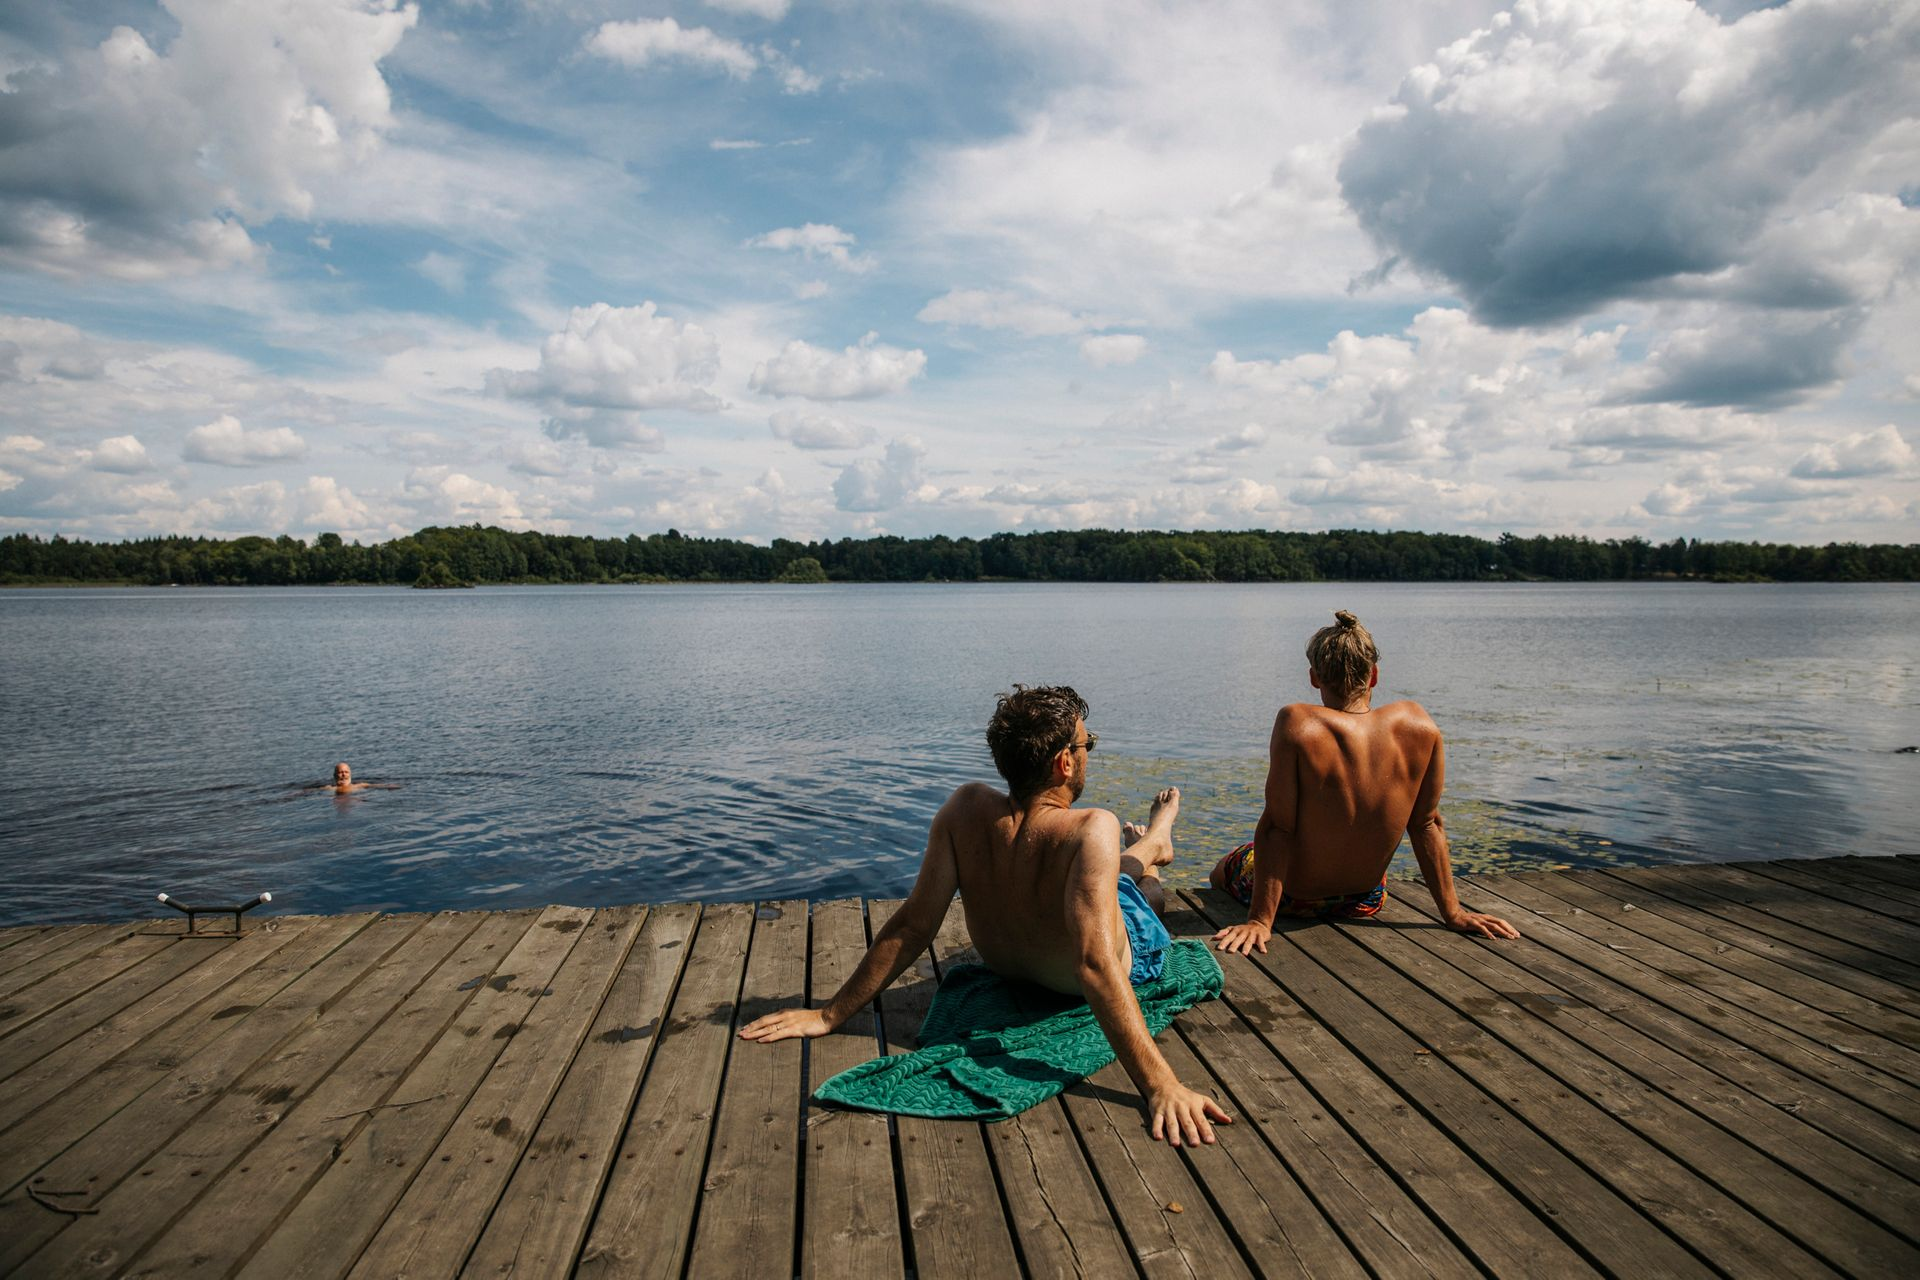 By the lake , two men tanning